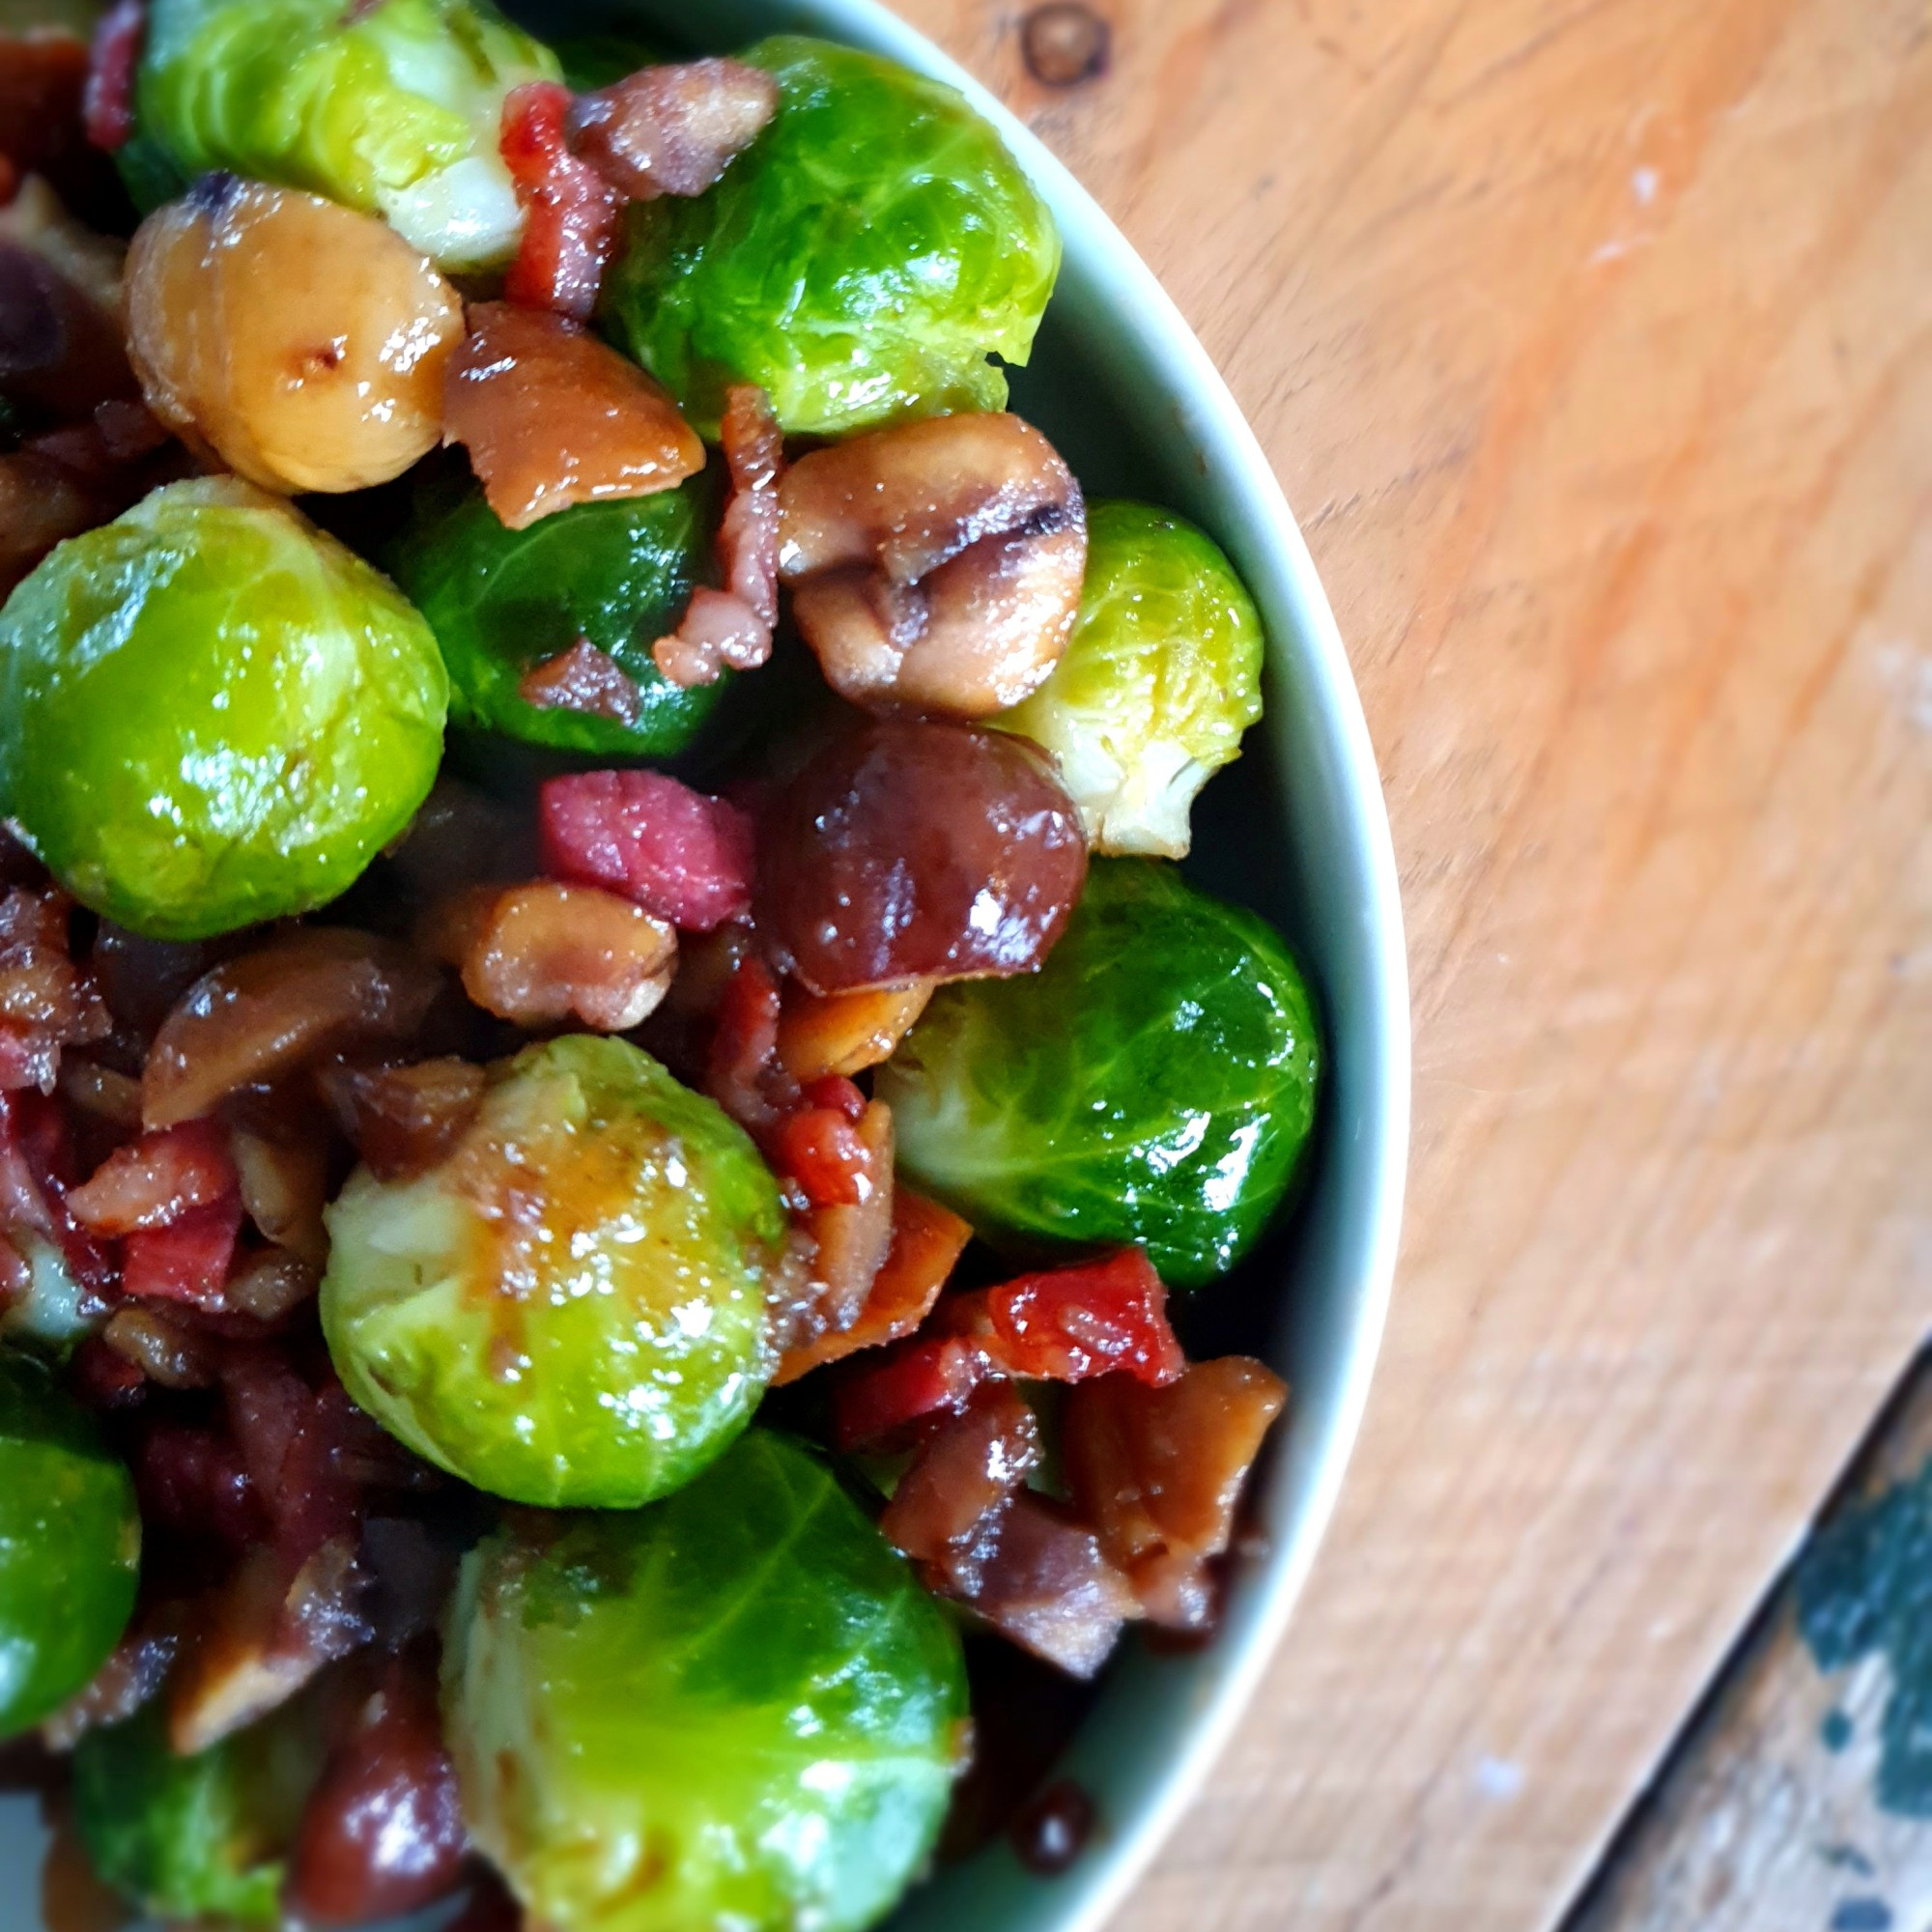 Maple brussel sprouts with pancetta and chestnuts